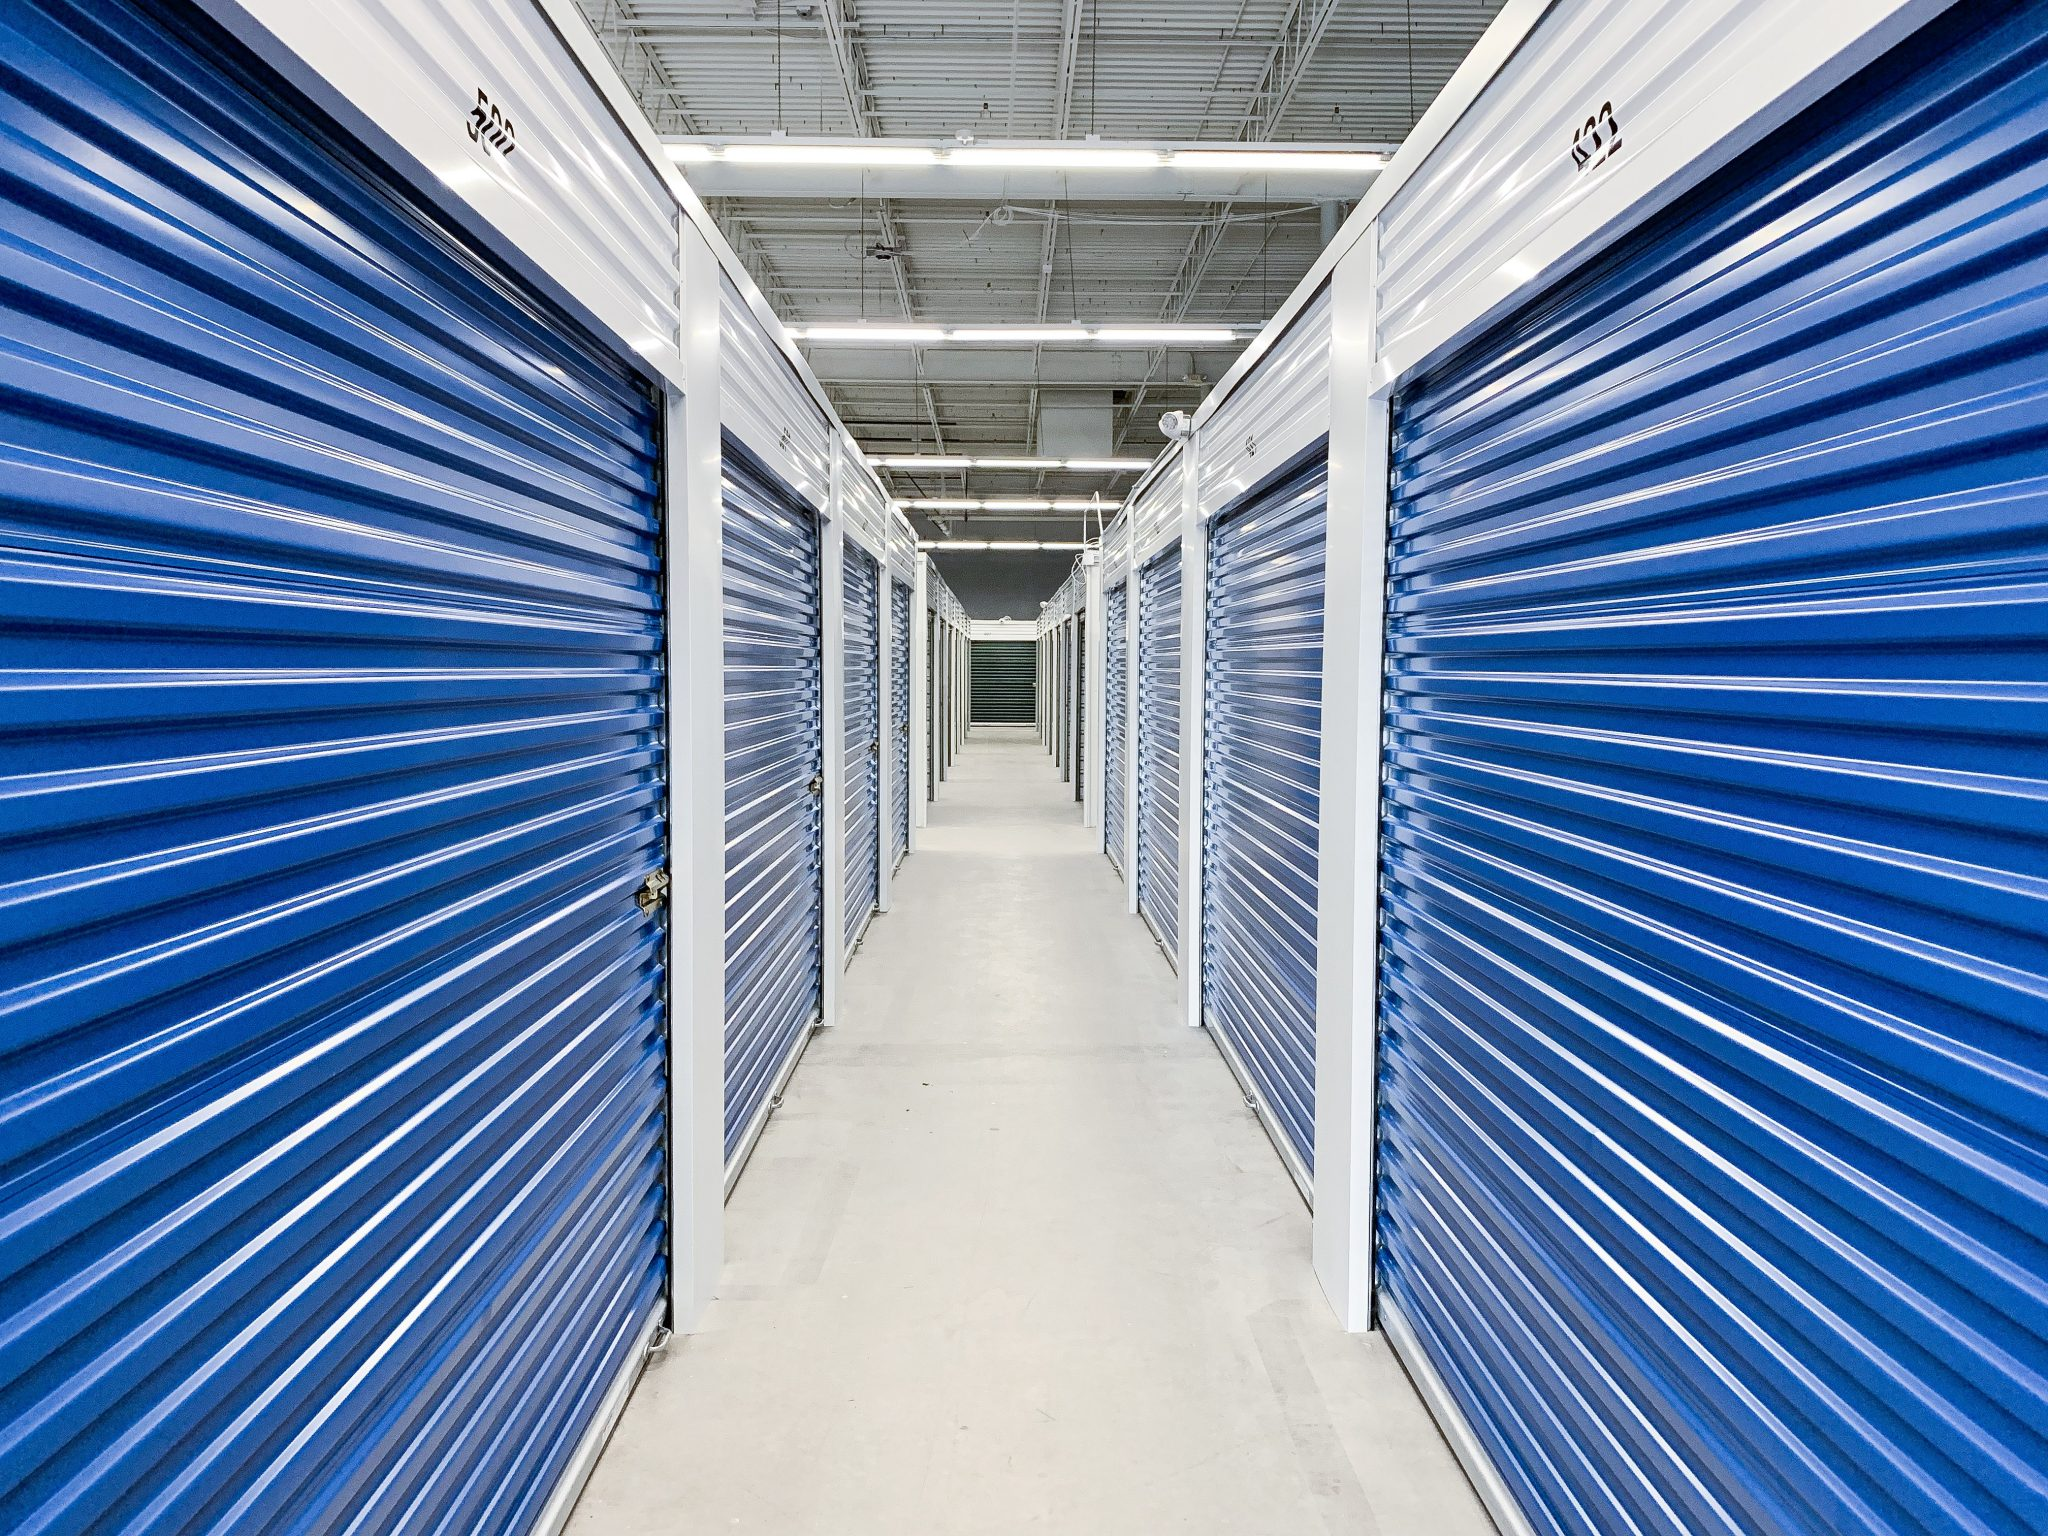 Blue Storage Hallway at Ashland Storage Center